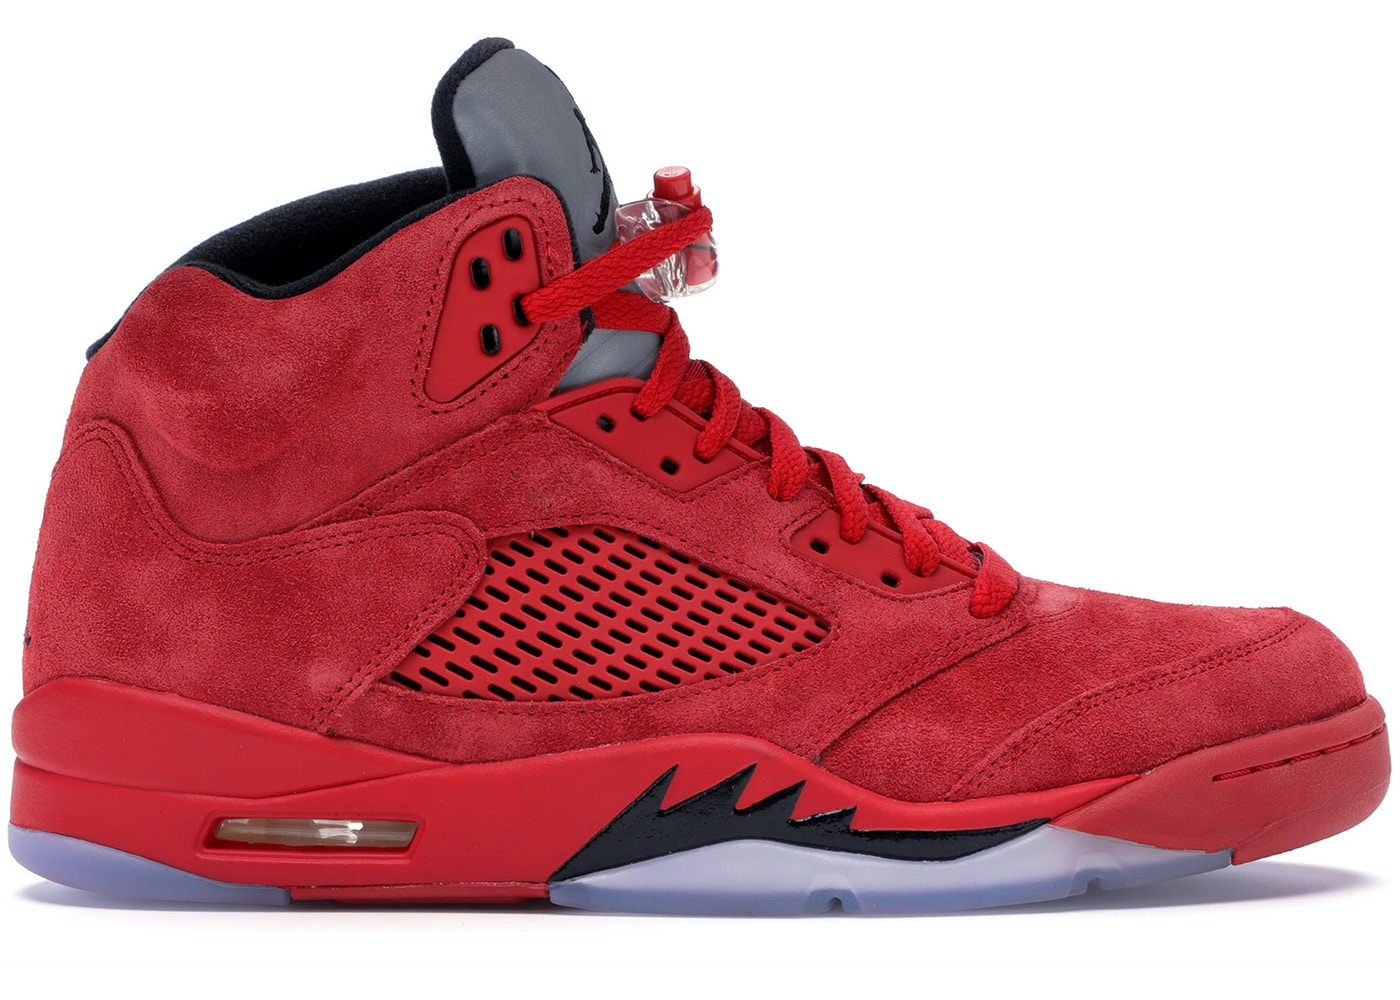 52985748011c Buy Air Jordan 5 Shoes   Deadstock Sneakers